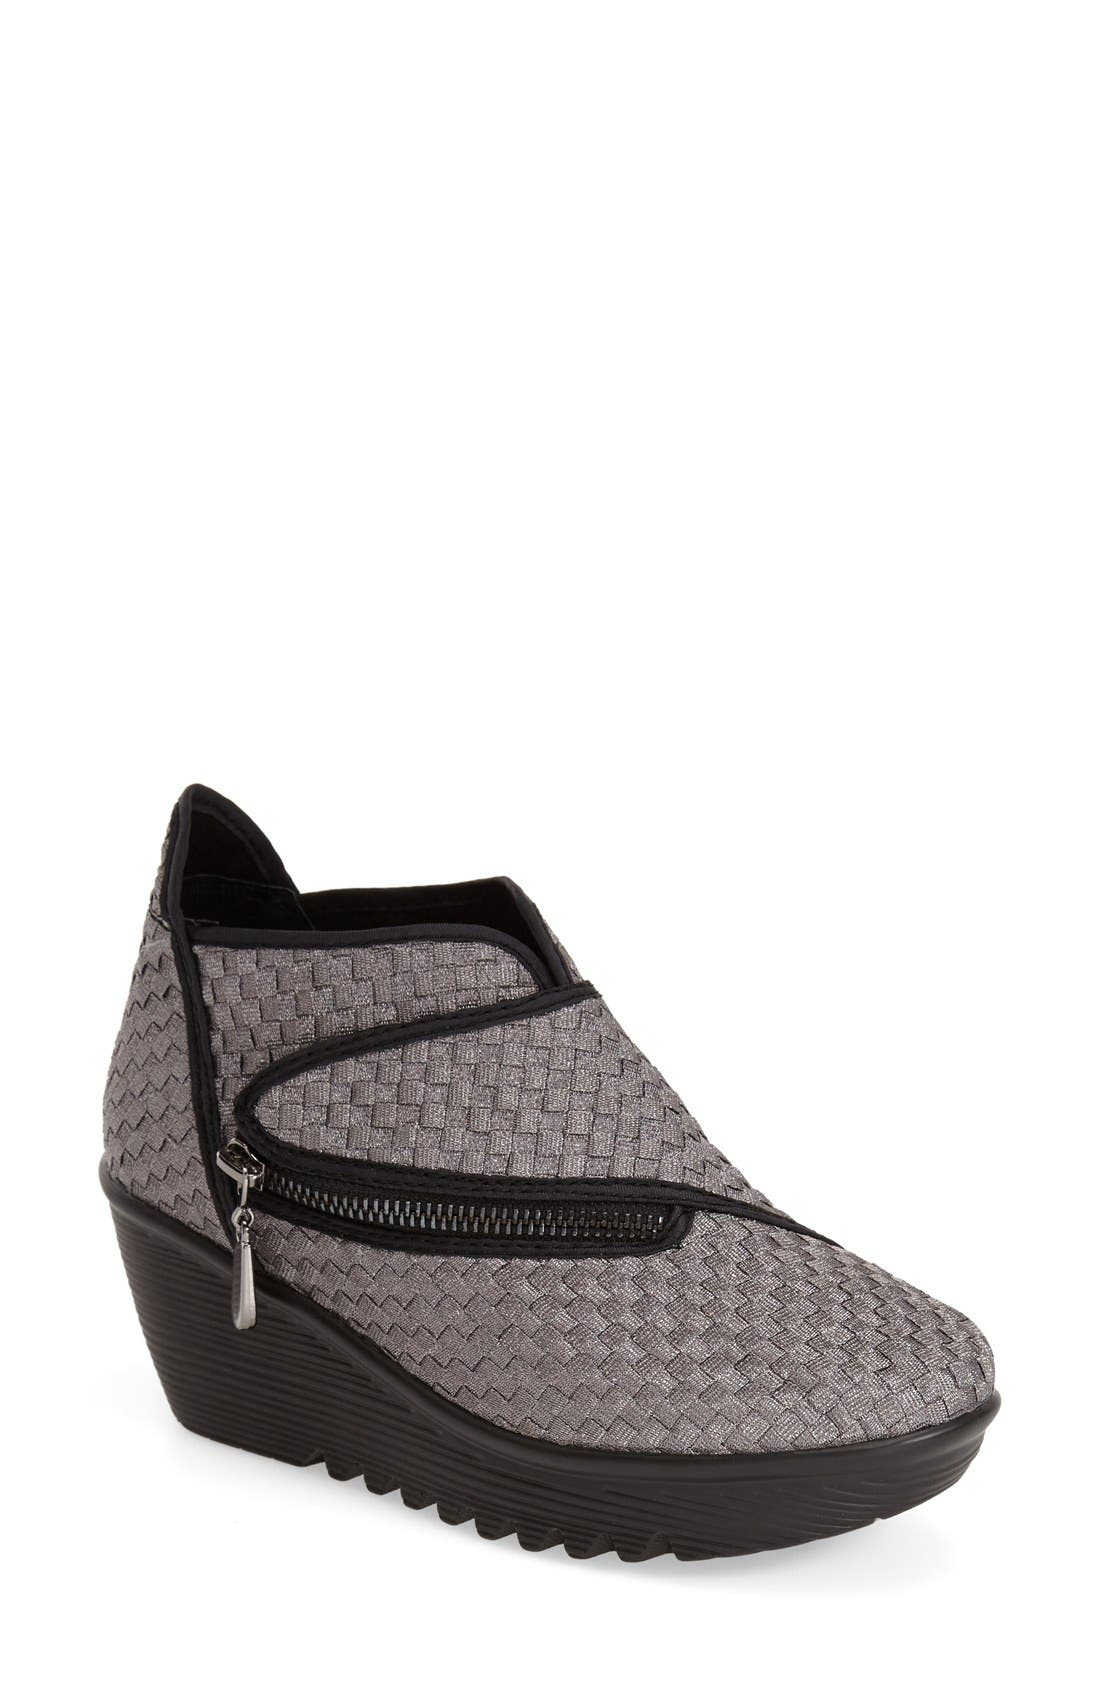 'ZigZag' Wedge Bootie,                             Main thumbnail 1, color,                             Gunmetal